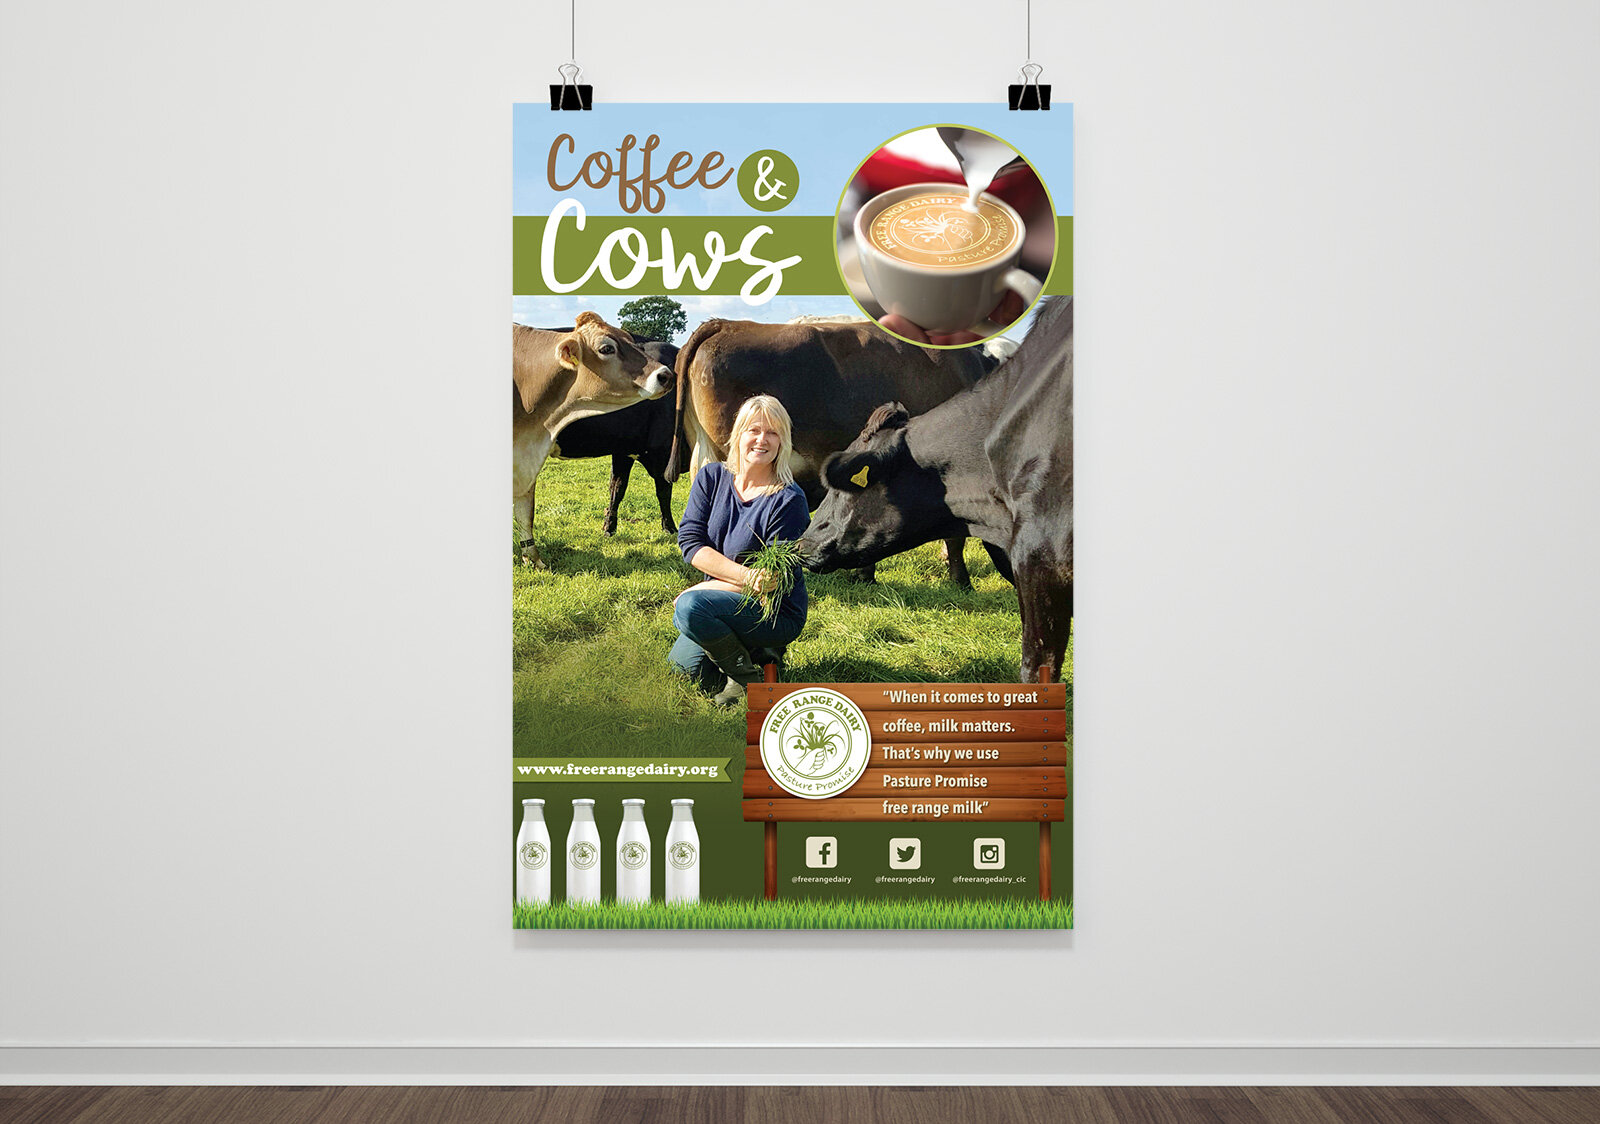 Coffee-cows-poster-homepage.jpg